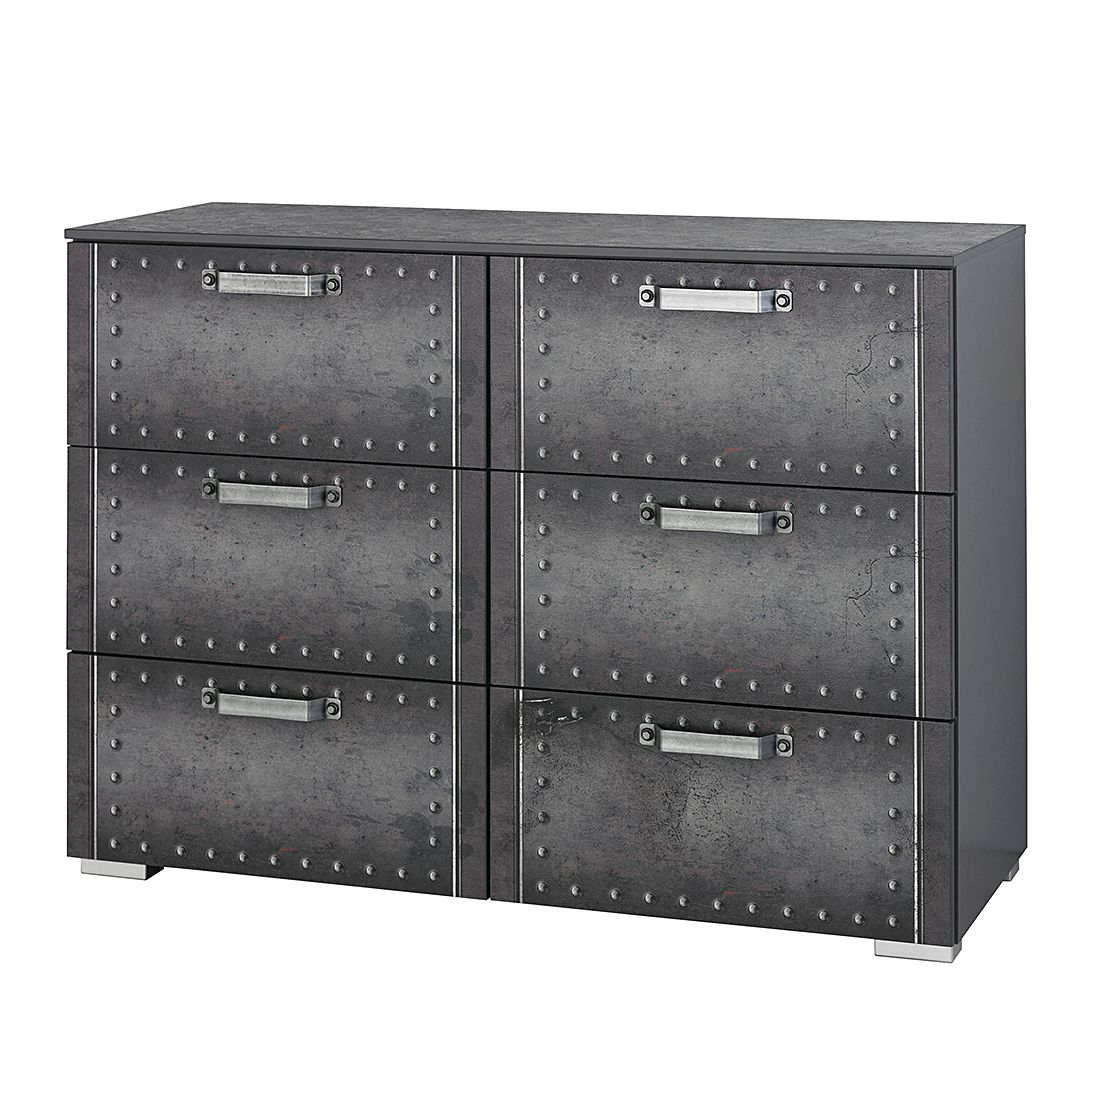 Commode à tiroirs Workbase I - Aspect imprimé industriel / Gris graphite, Rauch Select